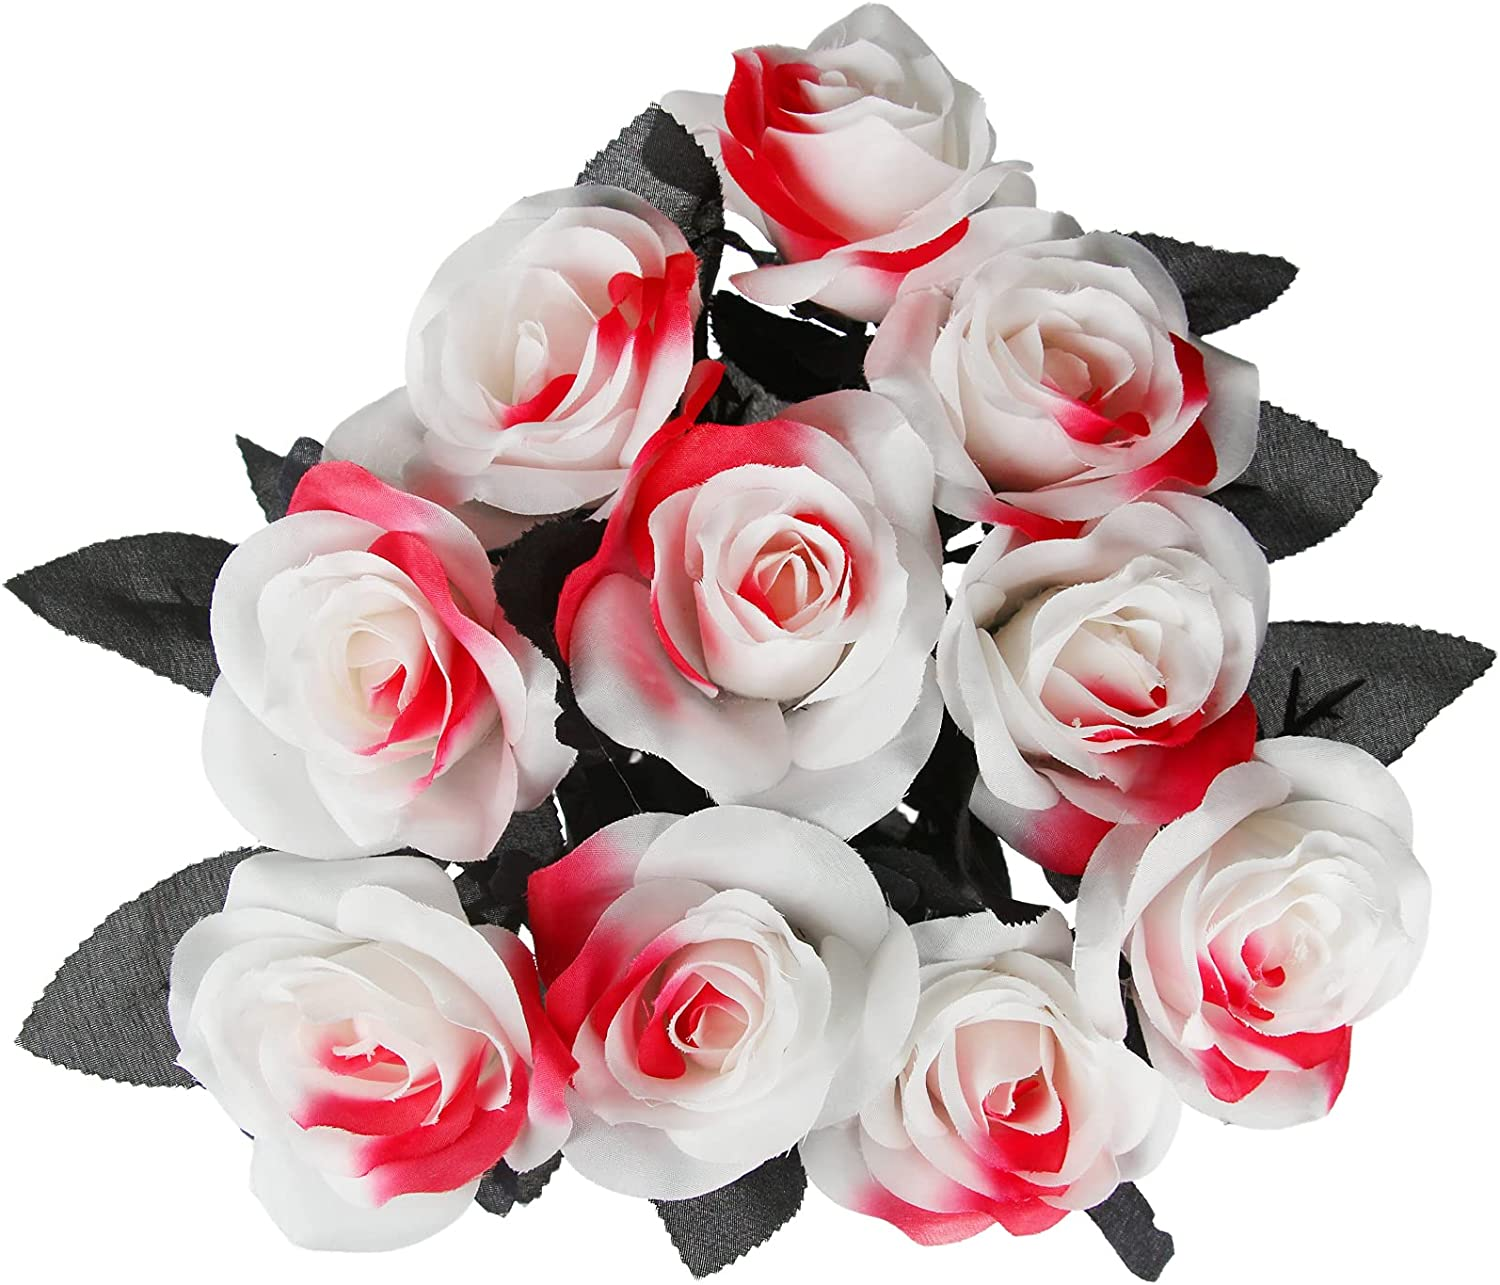 Tinsow 5% OFF 10 Clearance SALE Limited time Pcs Artificial Bloody White Roses Faux Bouquet Flowers